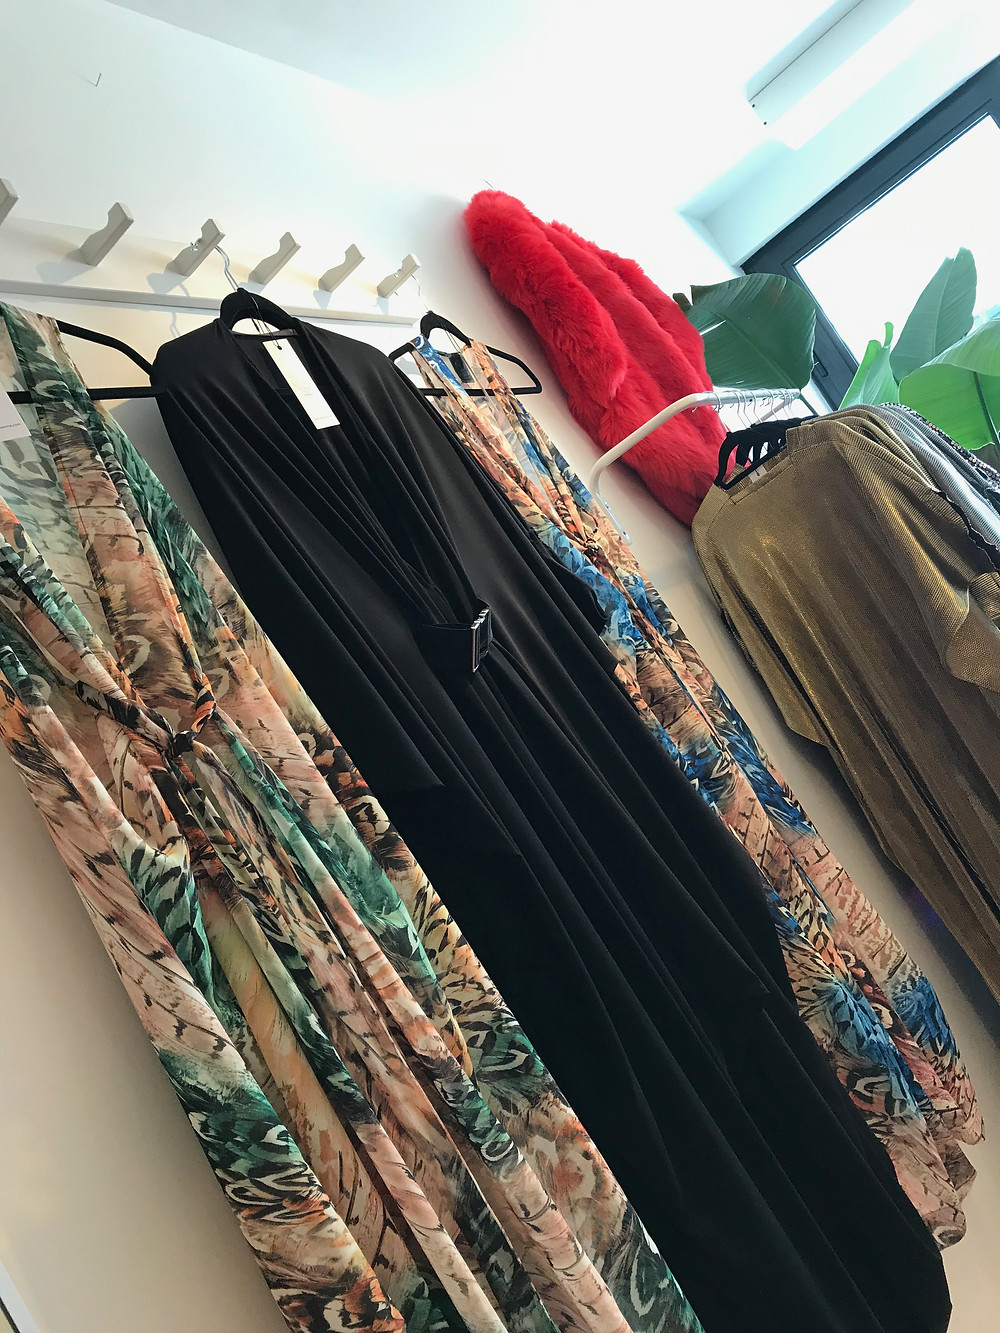 Electric Femme clothing store